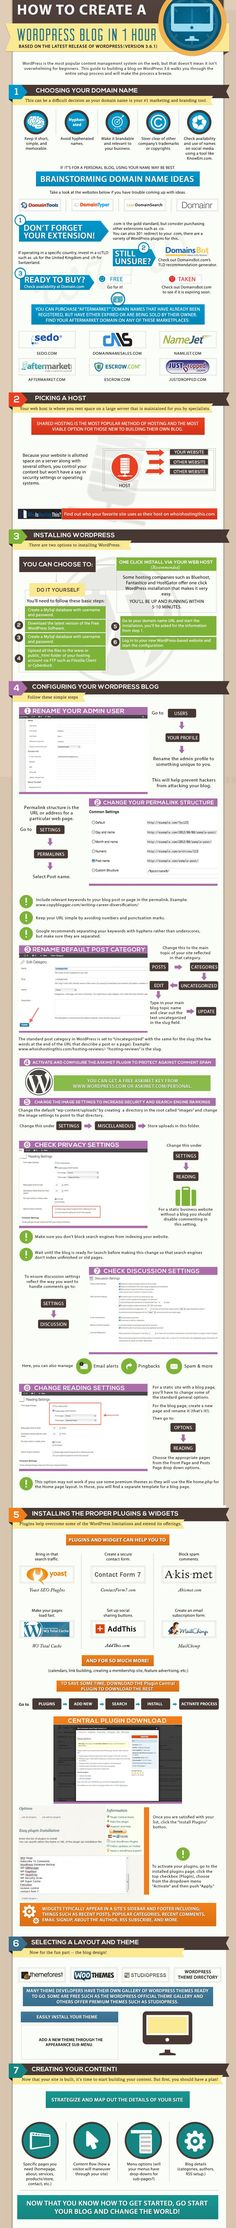 How to Create a self-hosted WordPress Blog in 1 Hour #infographic #Wordpress #Blog